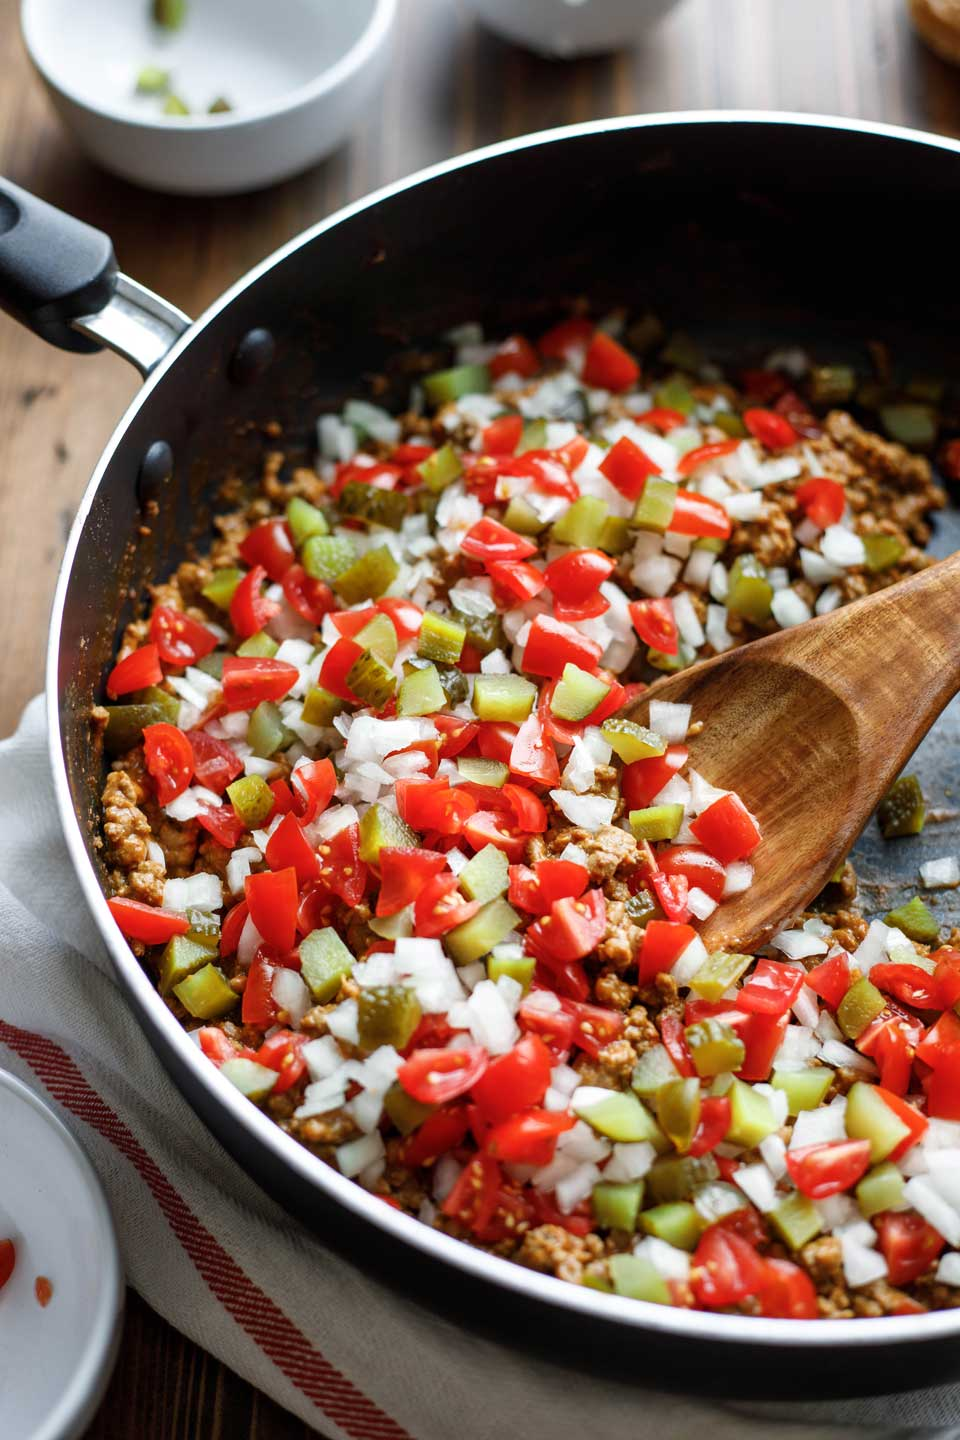 Stir crunchy onions, juicy tomatoes and sweet pickles into your Cheeseburger Sloppy Joes at the last minute - just like you'd throw them on top of a cheeseburger!